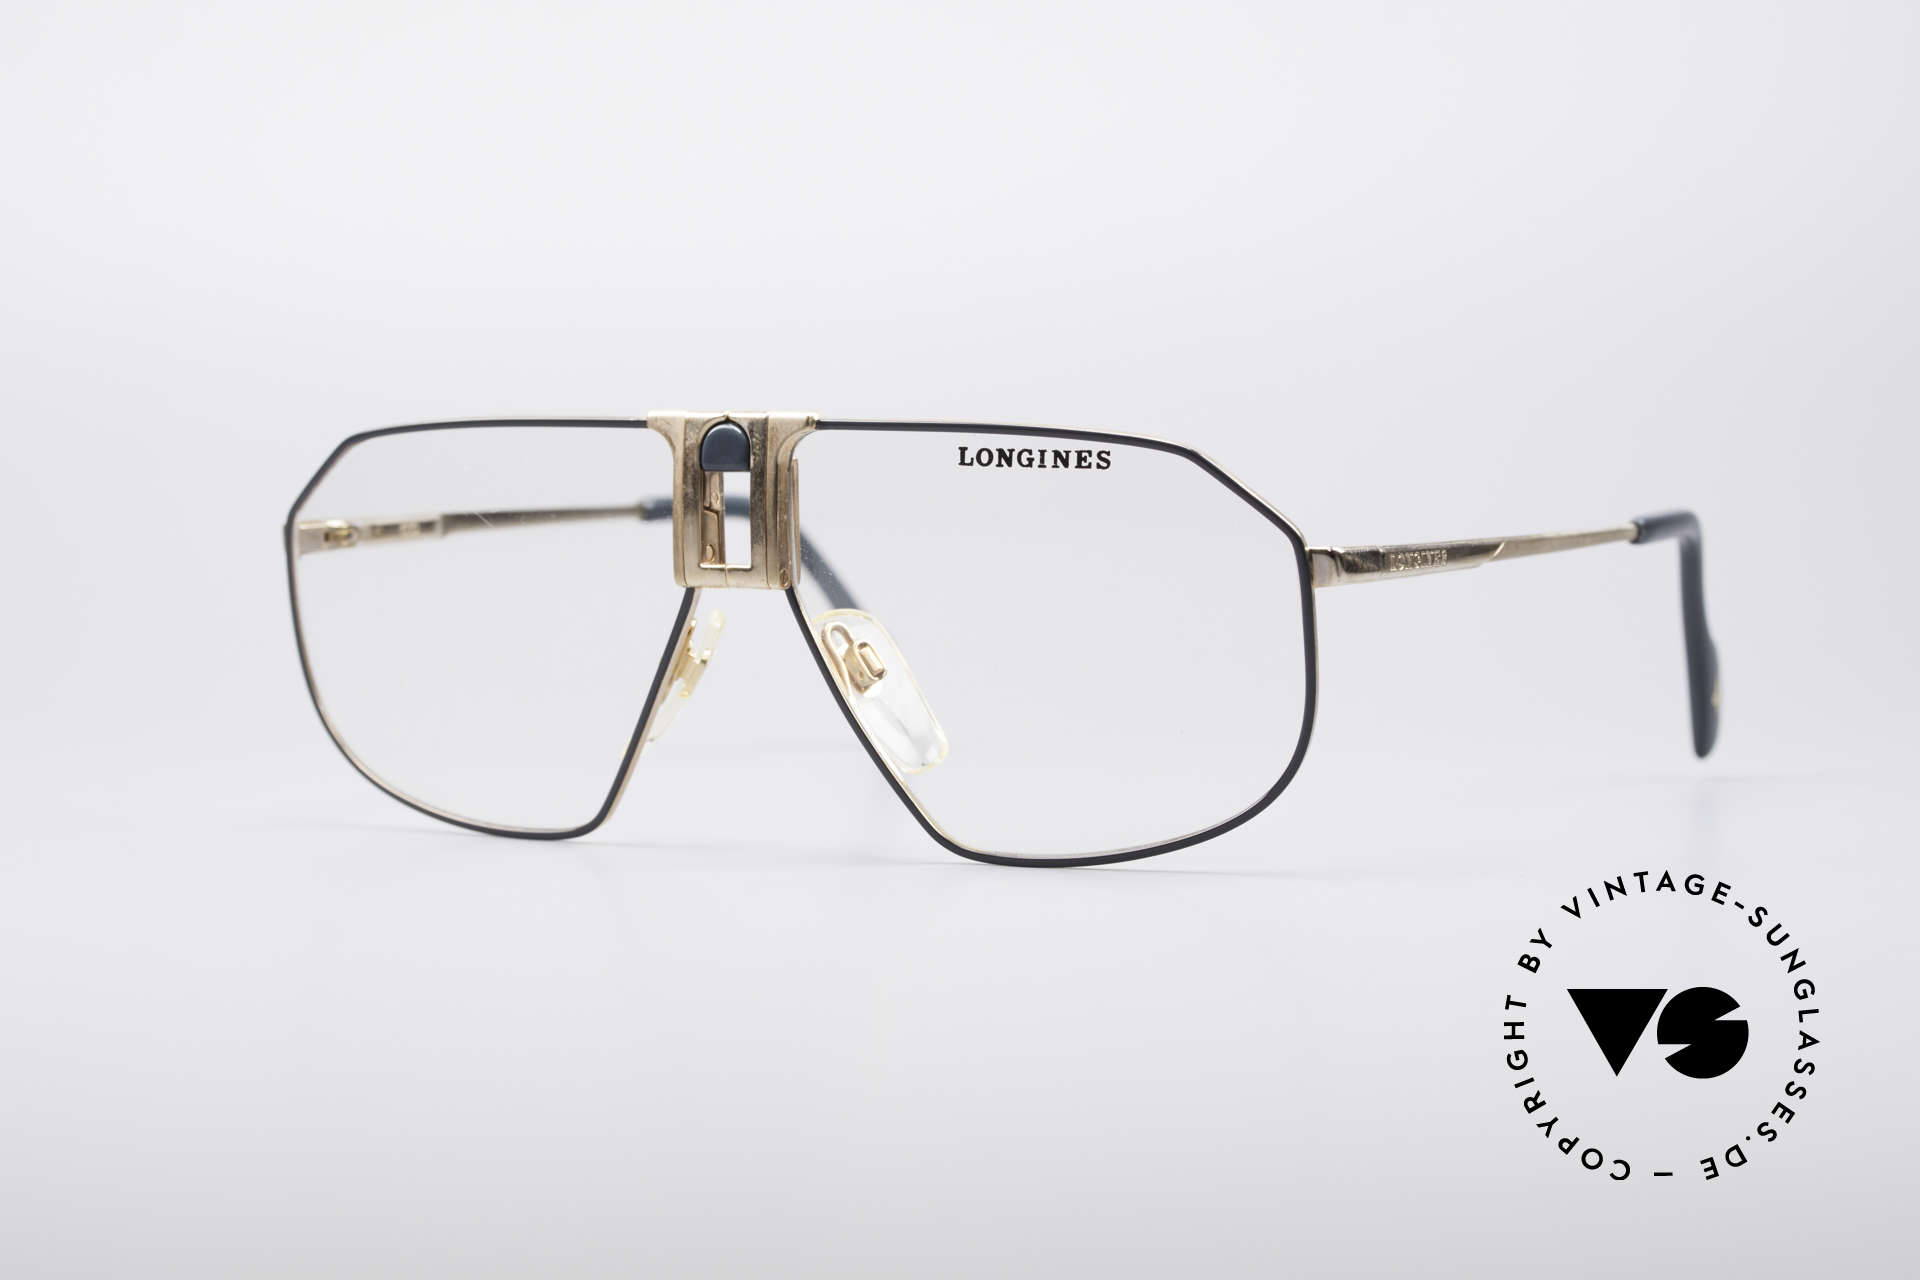 Longines 0153 80's Luxury Men's Frame, high-end VINTAGE designer eyeglasses by LONGINES, Made for Men